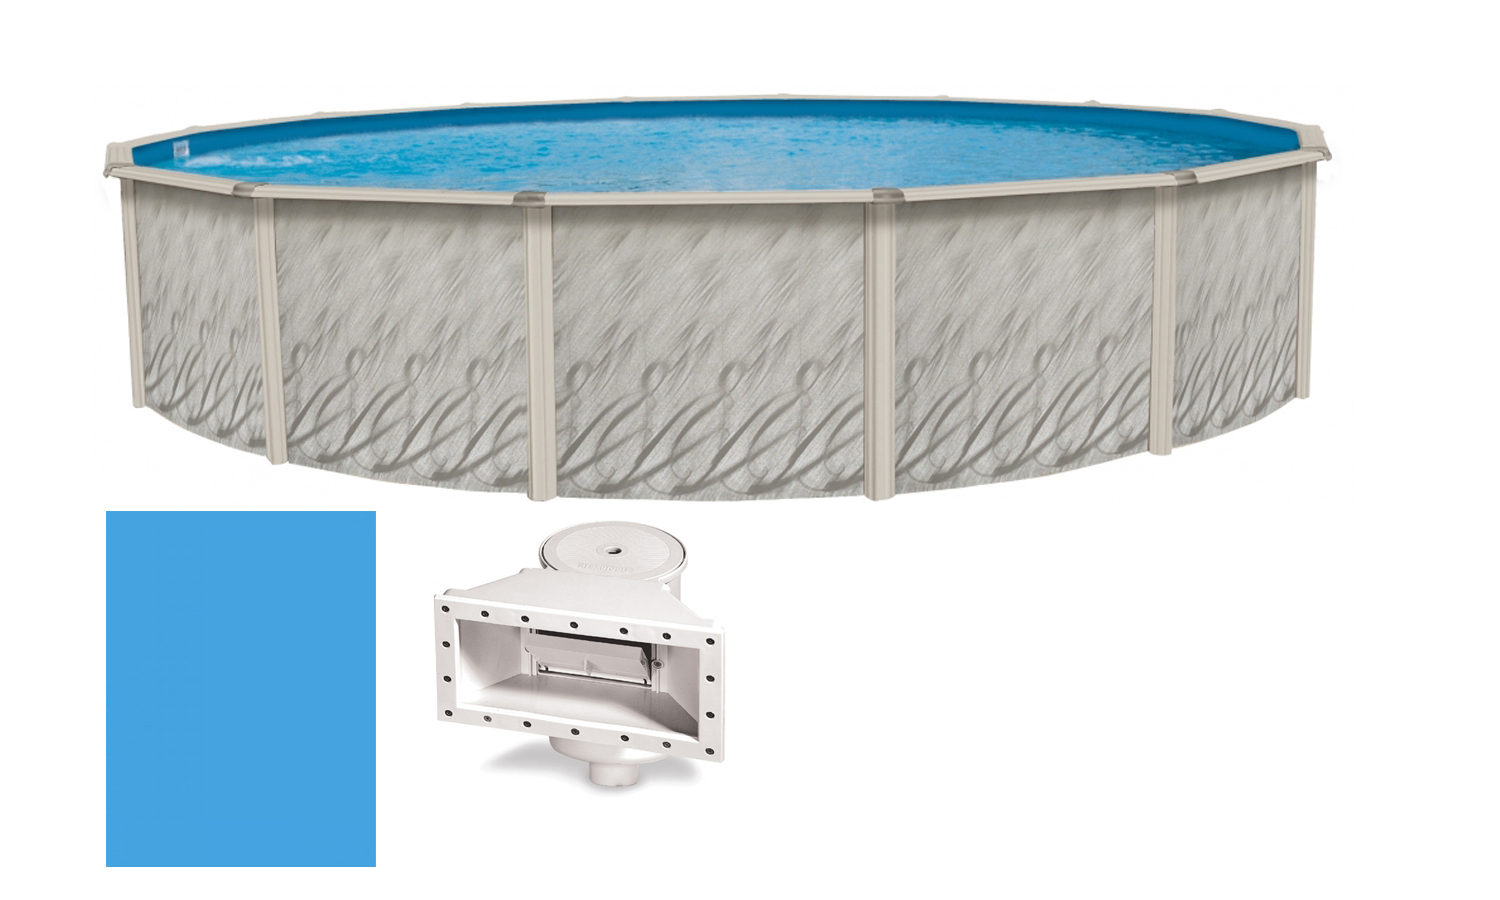 27 39 X52 Ft Round Meadows Above Ground Steel Frame Swimming Pool Liner Kit Ebay